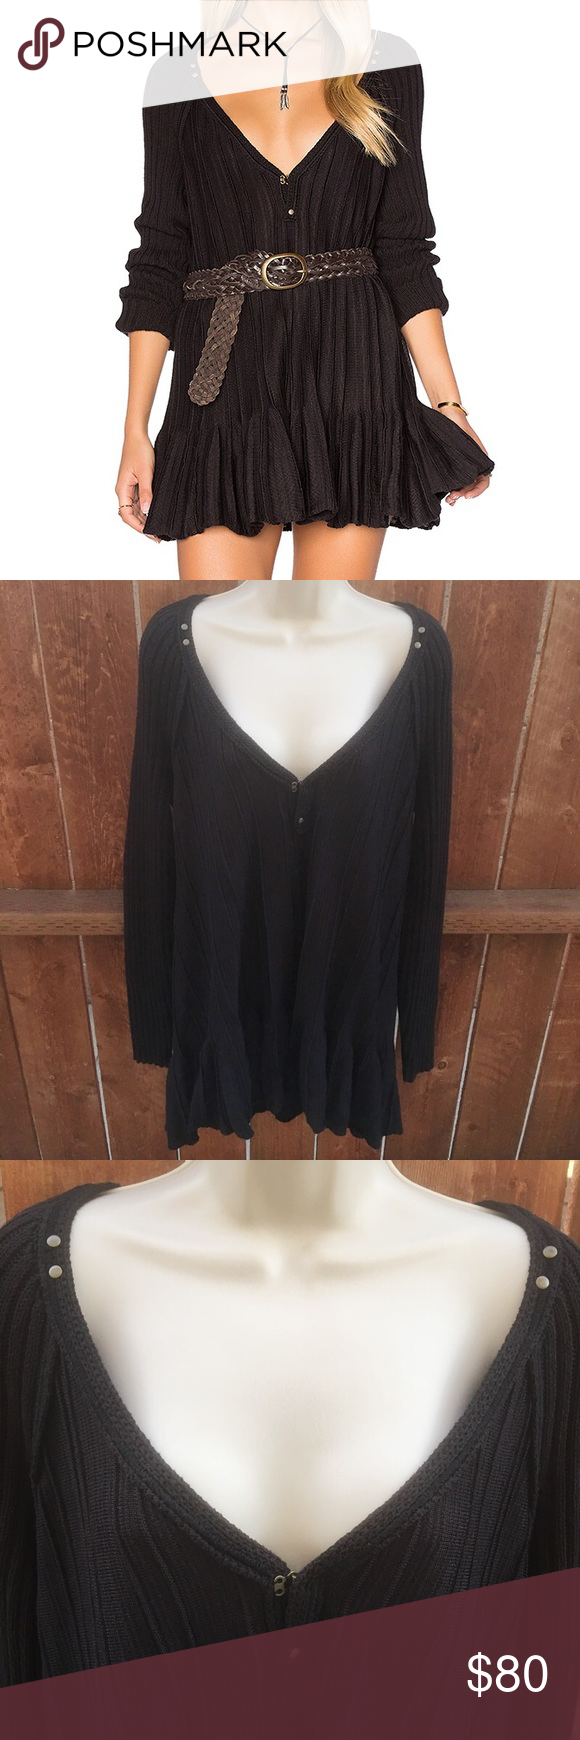 Nwt free people ribs and ruffles black flowy top flowy tops